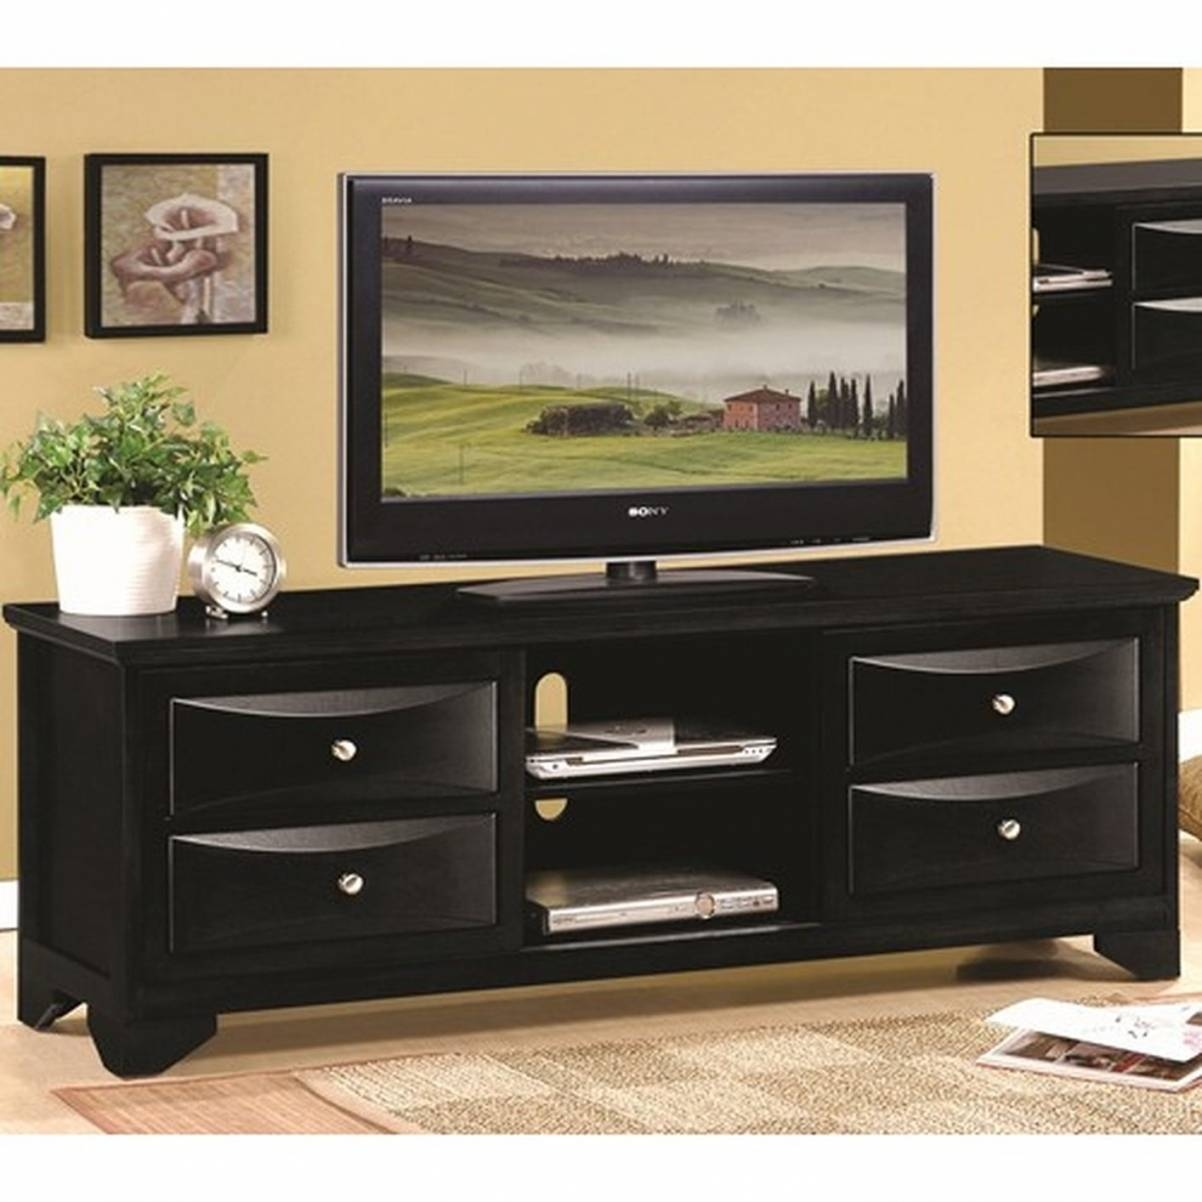 Luxury Tv Stands Big Lots Fresh   Vgmnation Inside Luxury Tv Stands (View 13 of 15)